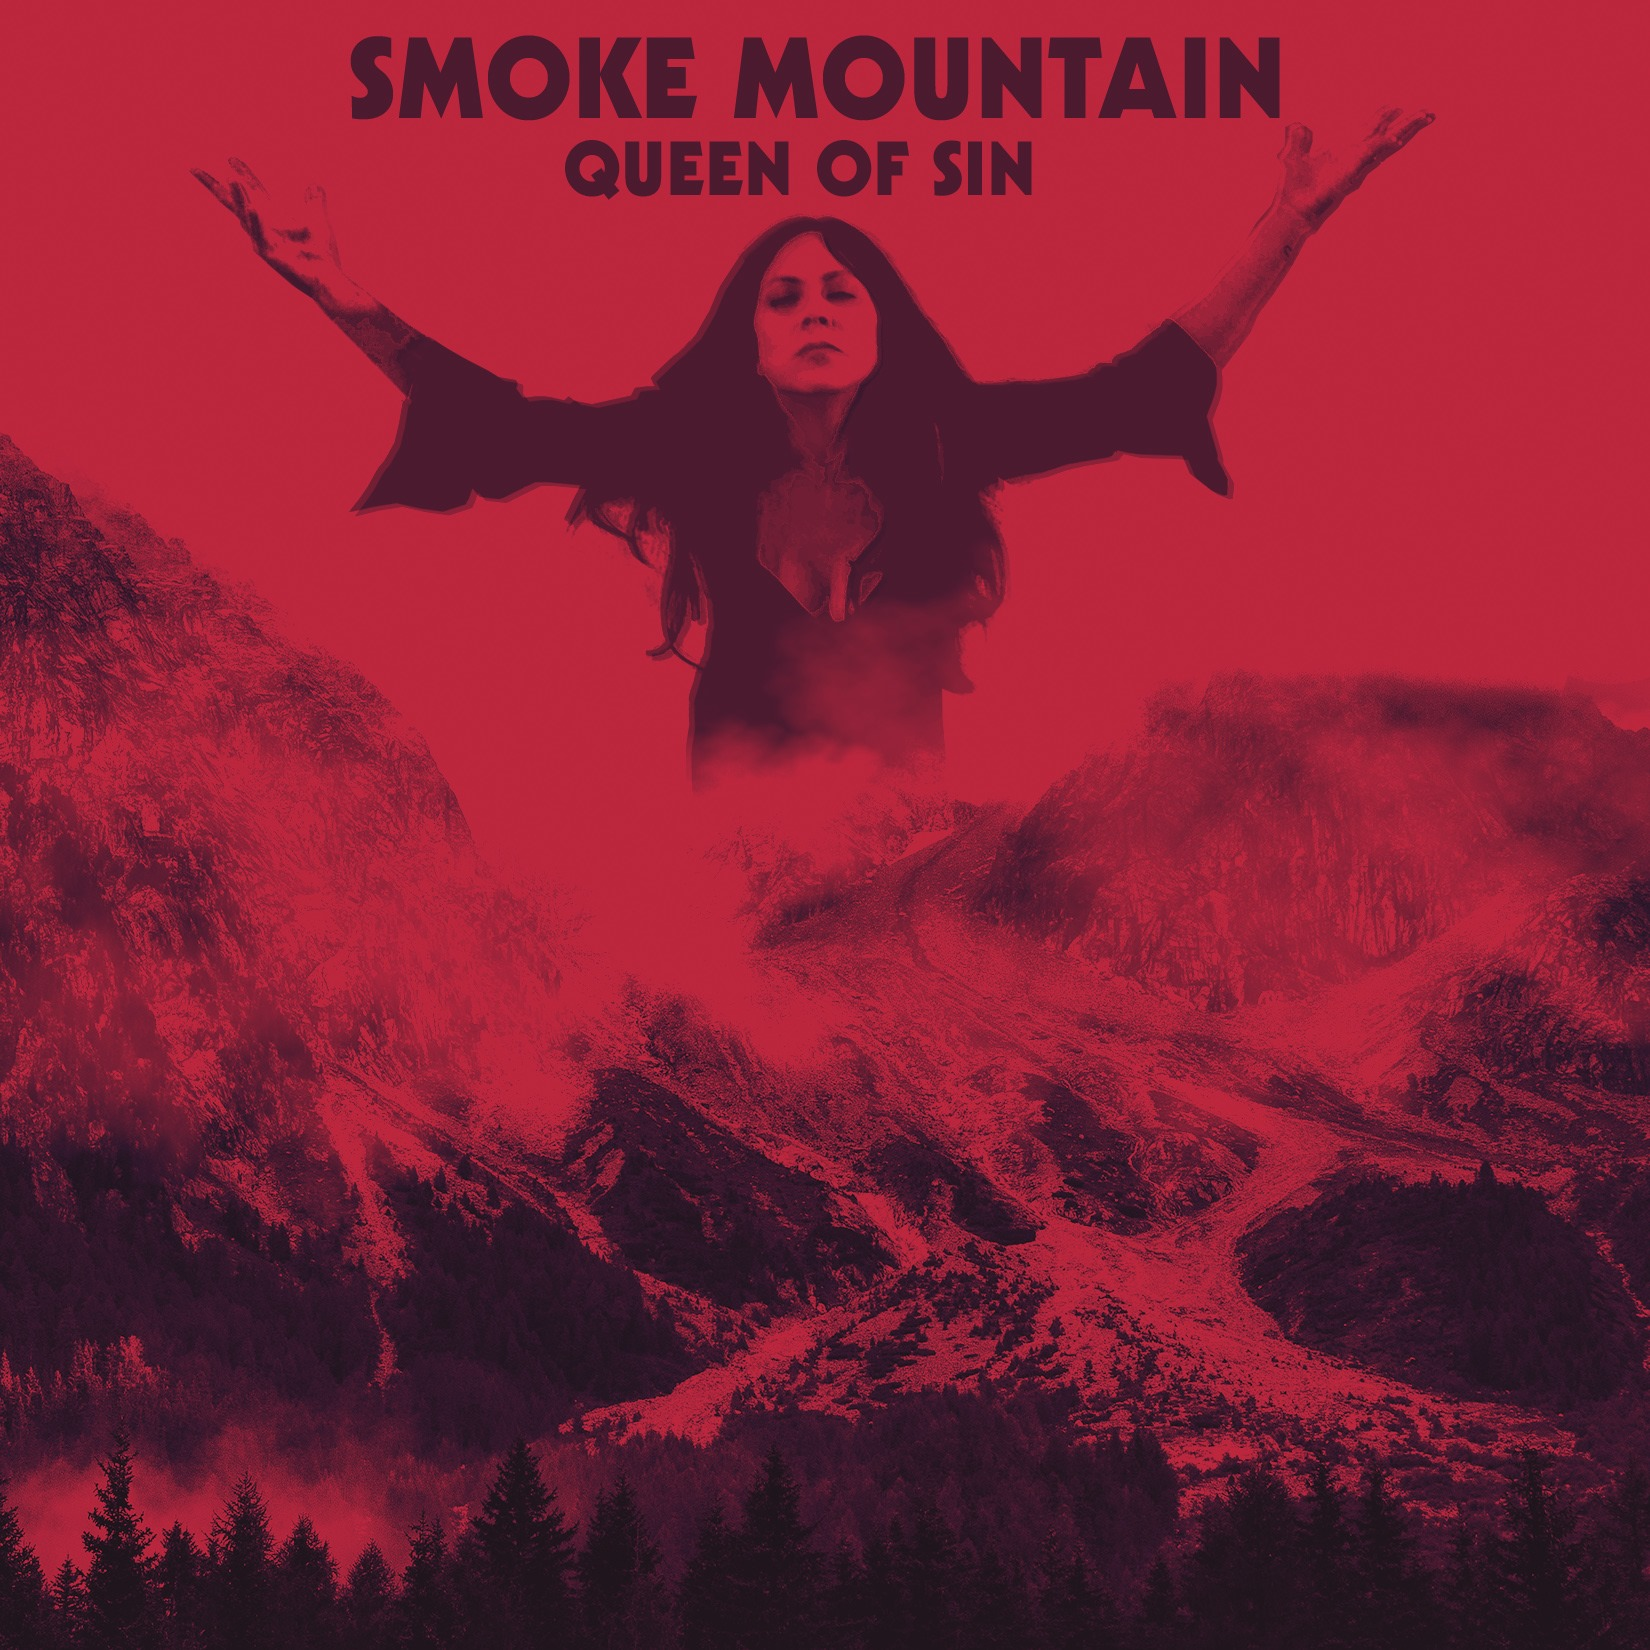 Smoke Mountain Queen of Sin